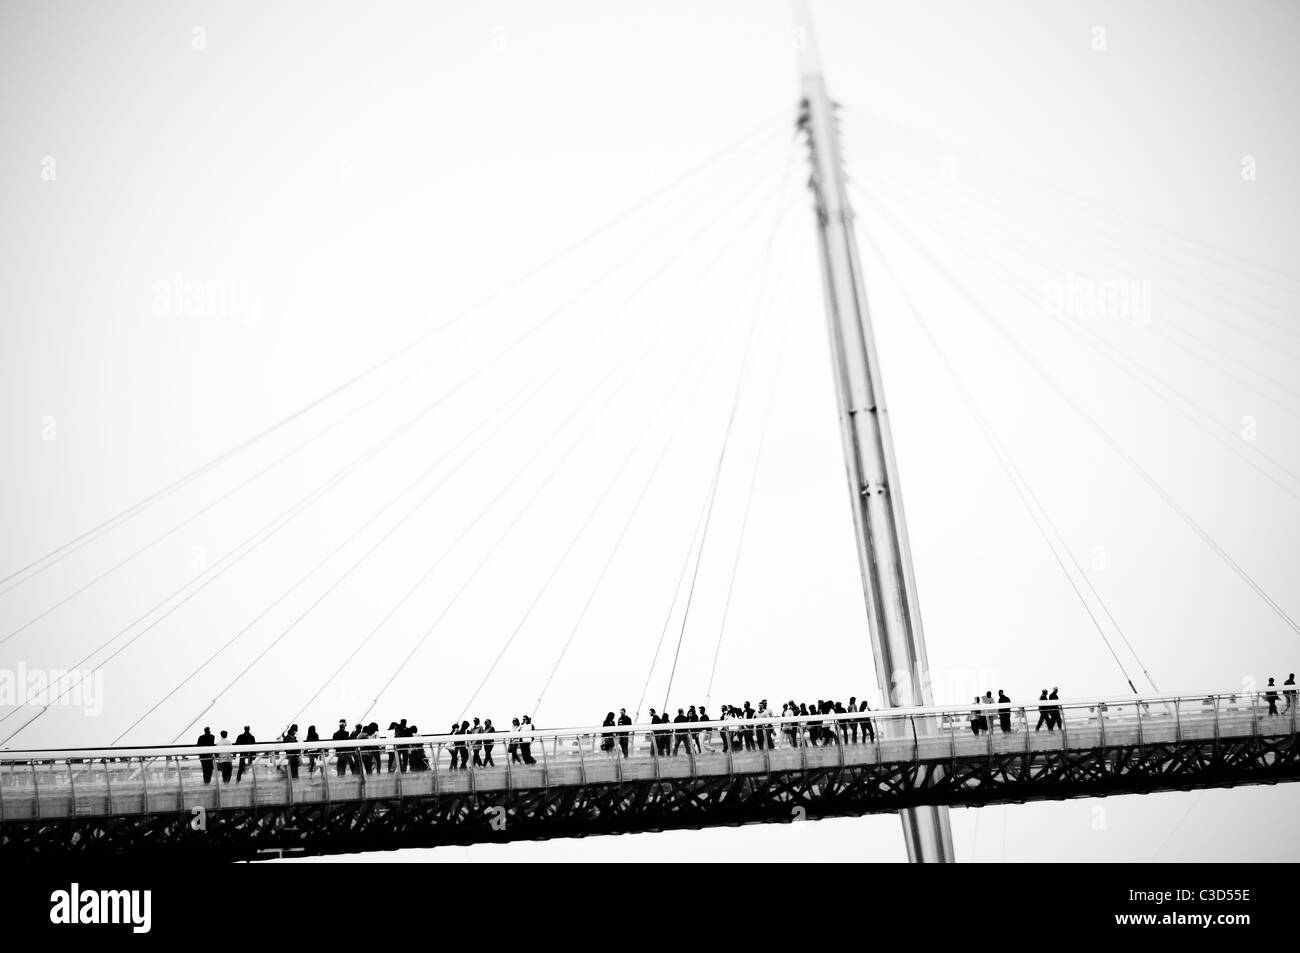 Italy, Pescara. People on cable bridge - Stock Image